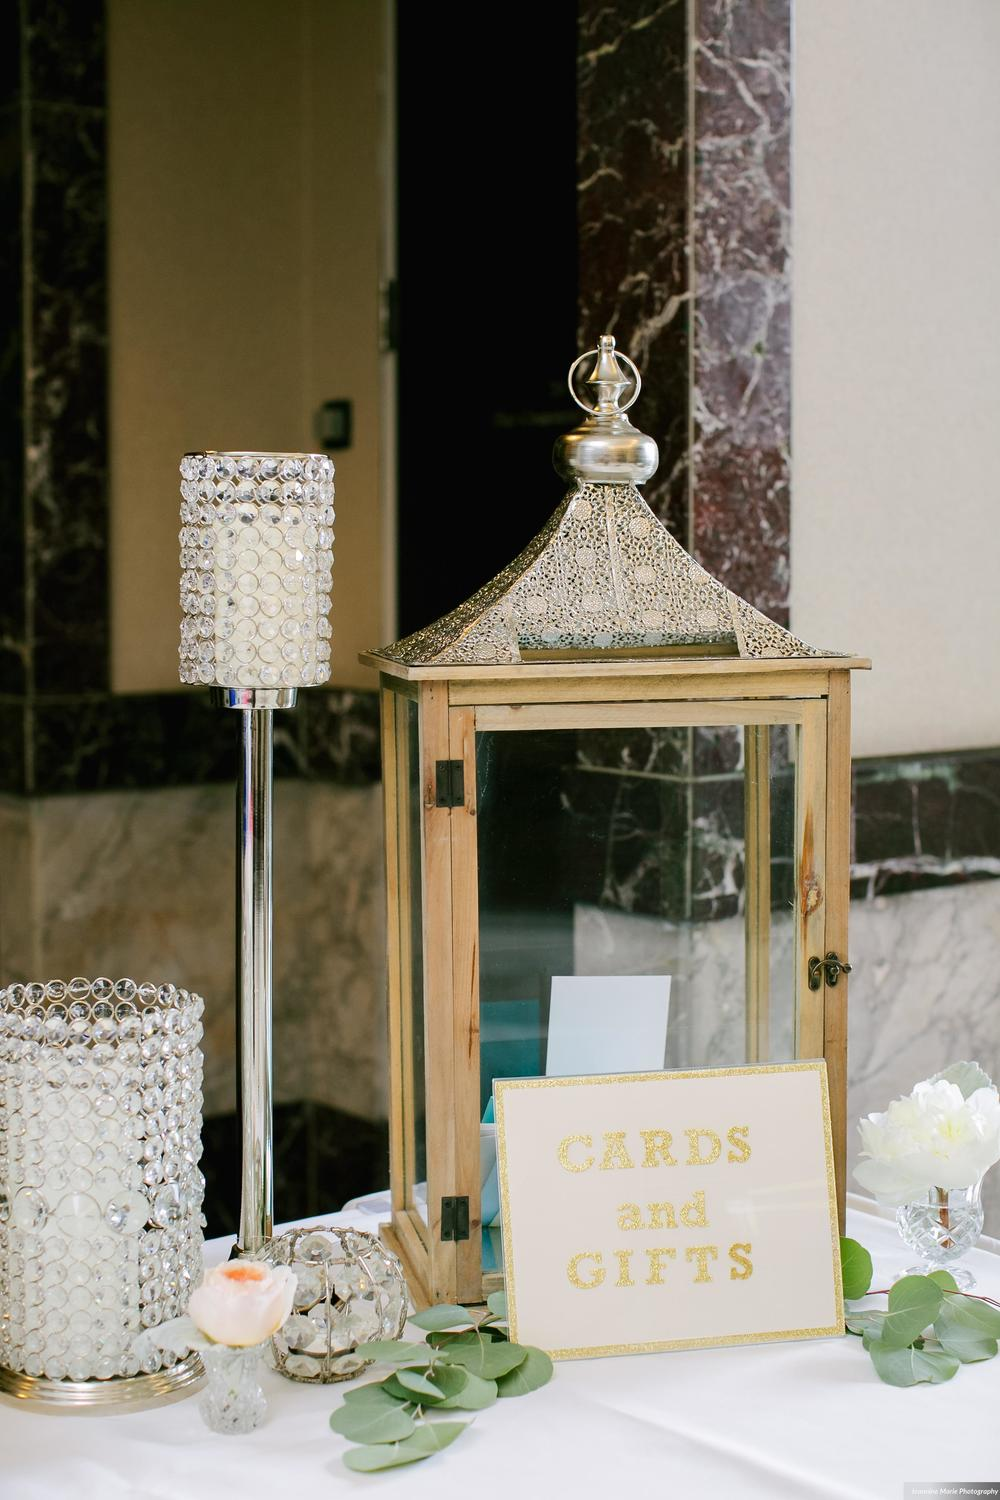 Photographer:  Jeannine Marie Photography | Event Venue: The Carlson Towers Rotunda and Amphitheatre | Caterer: Bon Appetit at Carlson Center | Floral & Event Designer: Whimsy Designs| Event Planner: Emily,  The Simply Elegant Group | Cinema and Video: J Walter Anderson Photo and Video  | Cake Designer: Queen of Cakes  | Hair Stylist: Sanctuary Salonspa | Makeup Artist:Sanctuary Salonspa | Tuxedo and Mens Attire: Savvi Formalwear | Dress Designer: Stella York | Dress Store: Charlotte's Bridal | Officiant: Grand Avenue Wedding Officiants | Other: International Cigars  | Photo Booth Equipment: The Photo Booth Group  | Invitation Designer: Wedding Paper Divas | DJ: Adagio Djay Entertainment